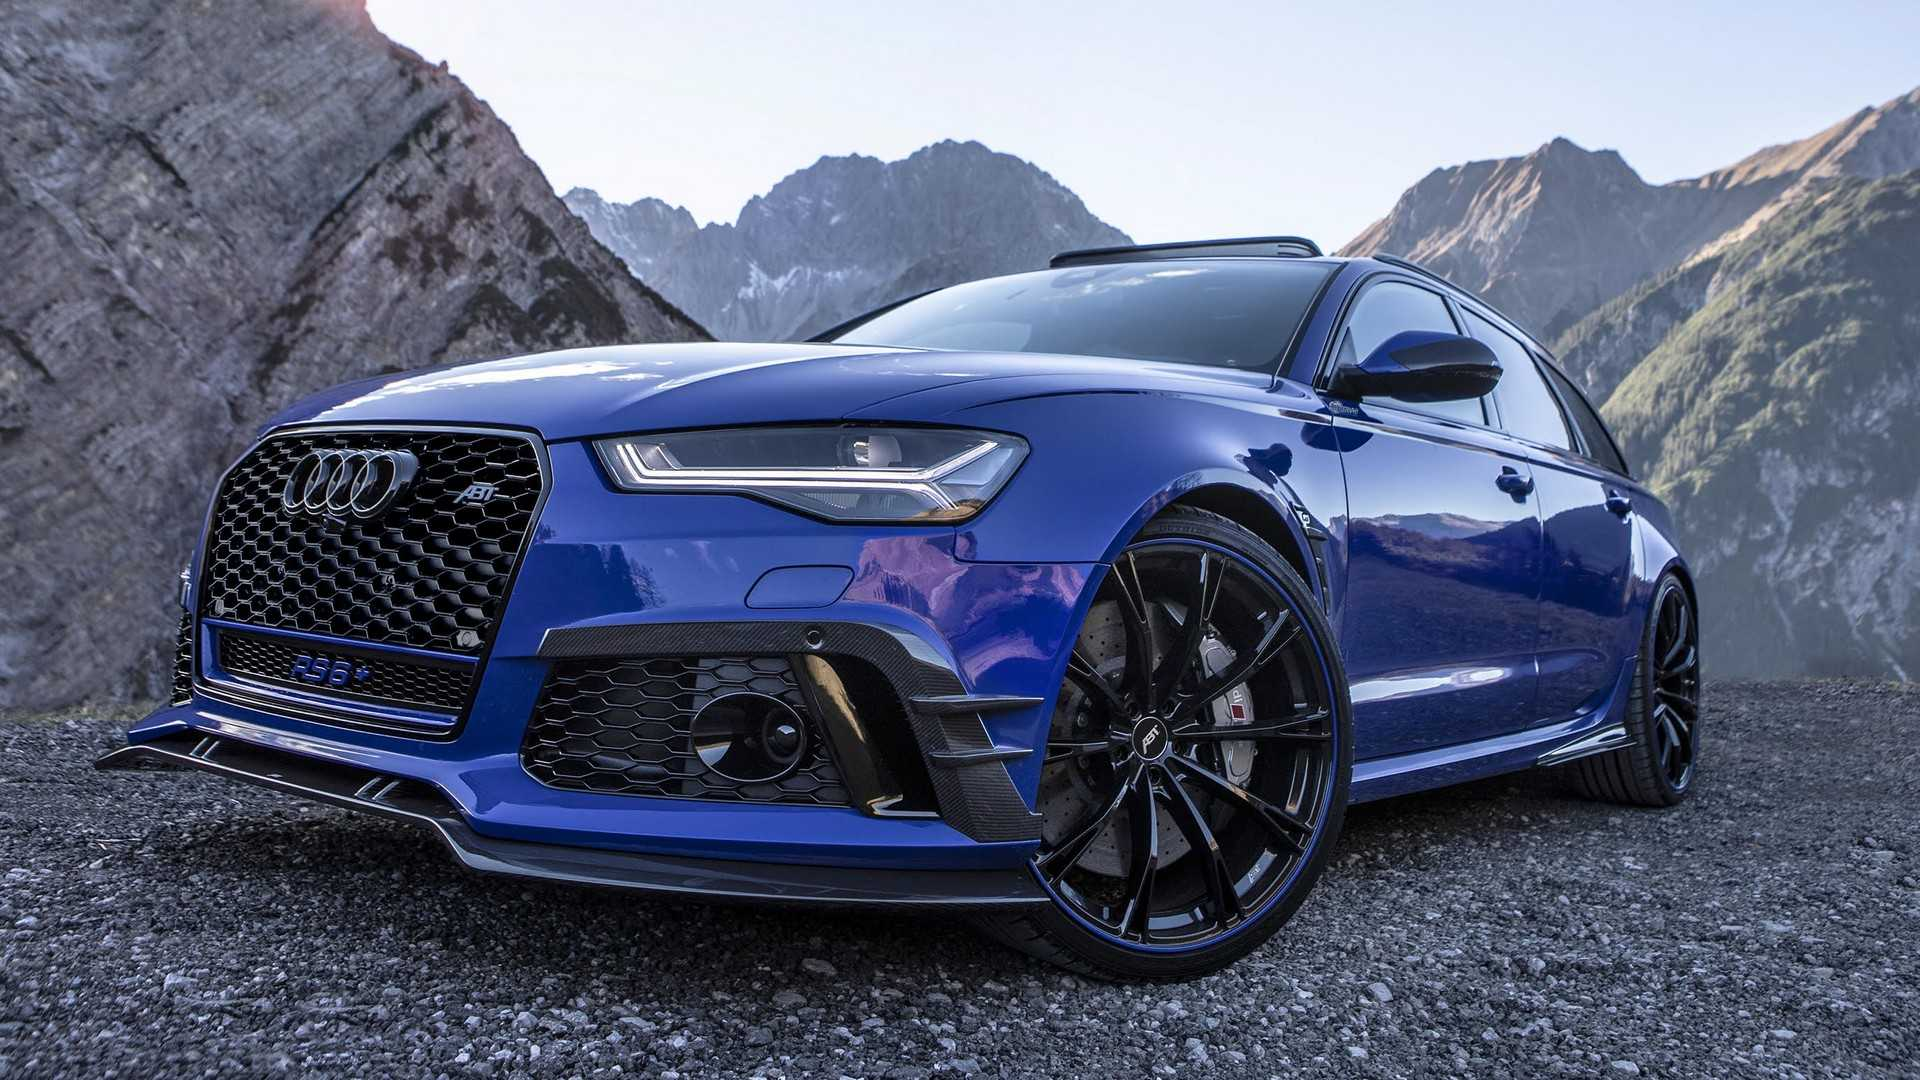 Audi Rs6 Avant Nogaro Edition By Abt Packs 725 Hp 541 Kw